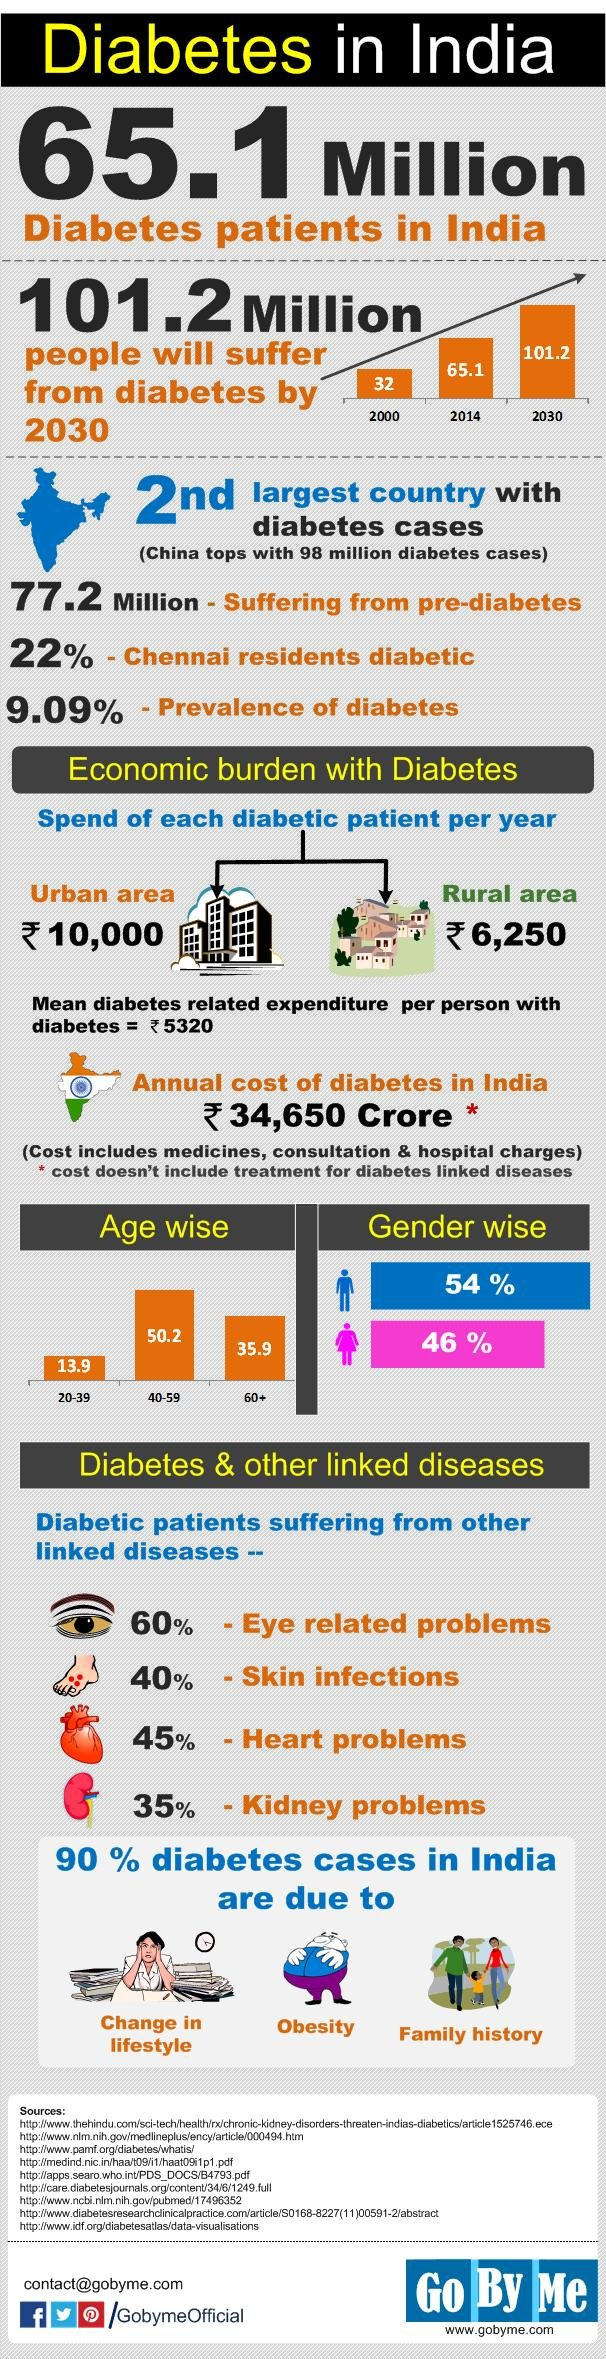 Cost Of Diabetes In India: Age, Gender,spend Of Patients Statistics Infographic